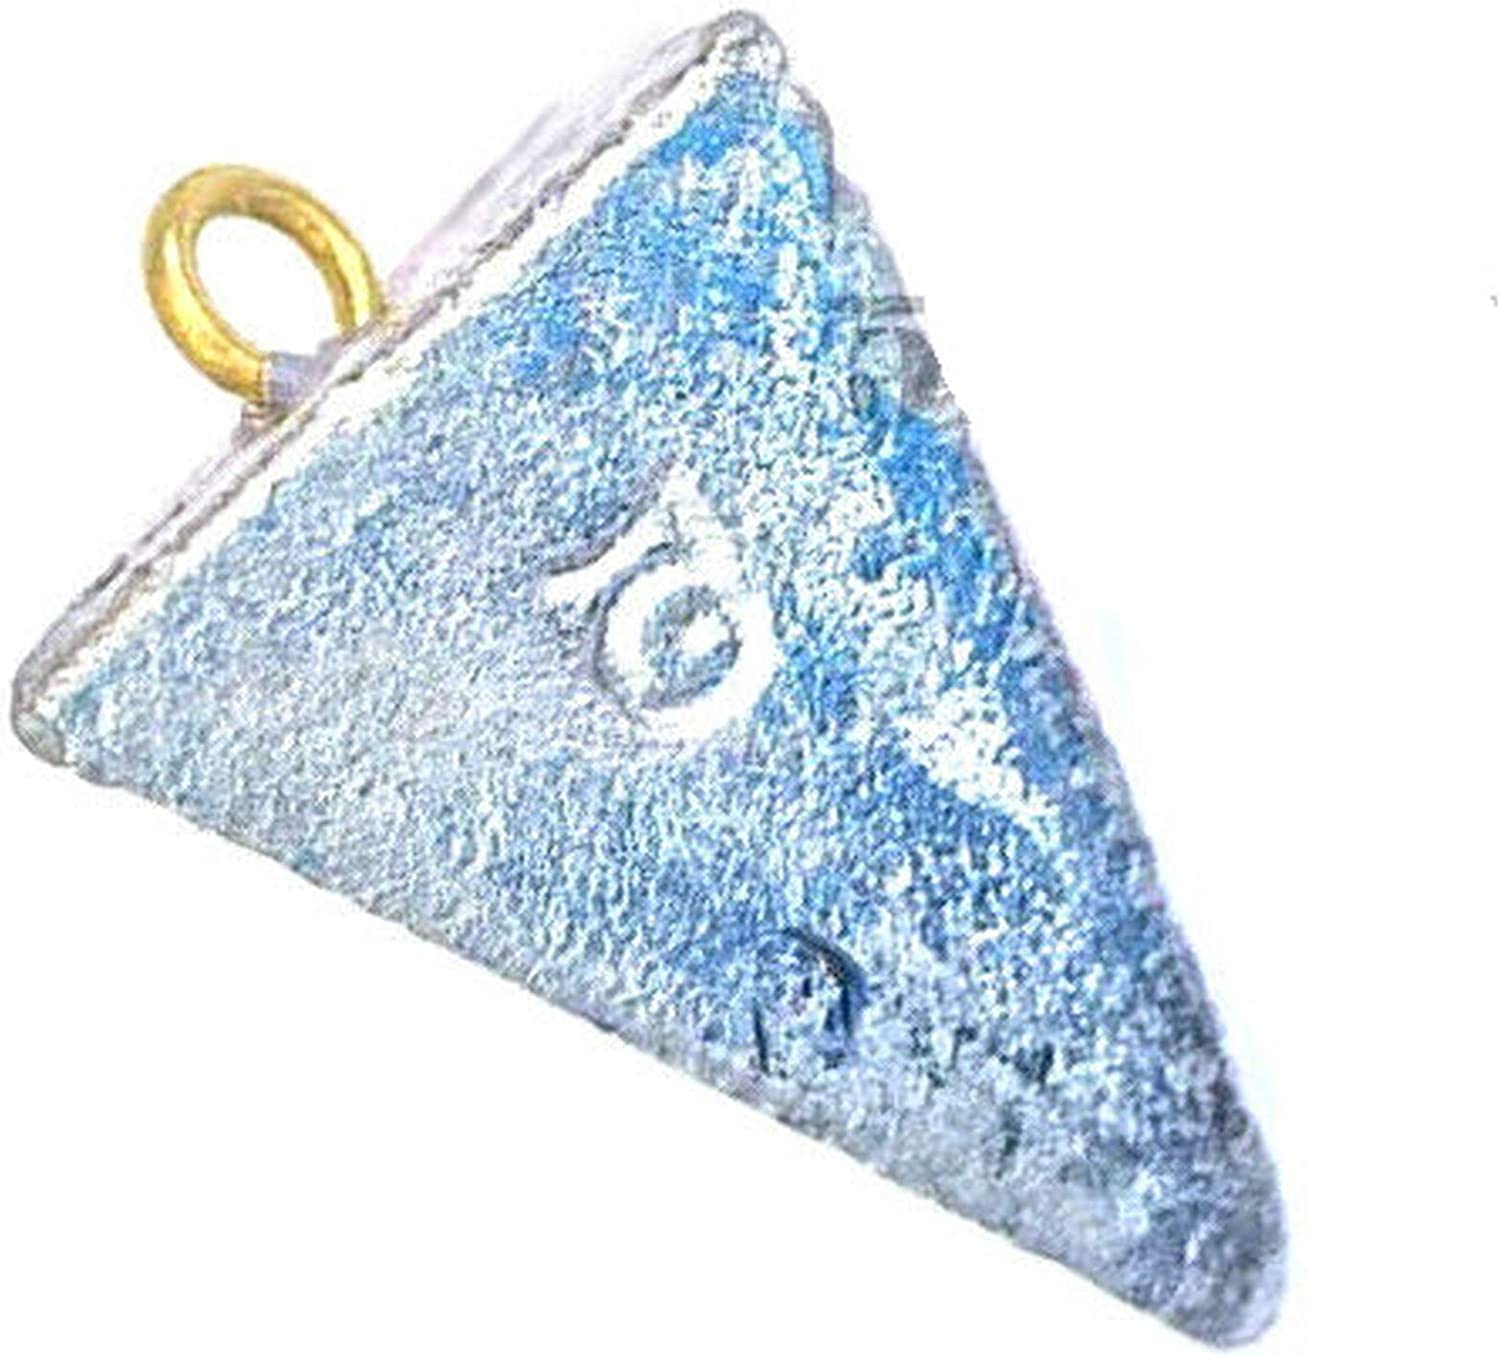 New Pyramid 5 Max 68% OFF oz Fishing Sinker 30 Pack Weight famous Lead Eq